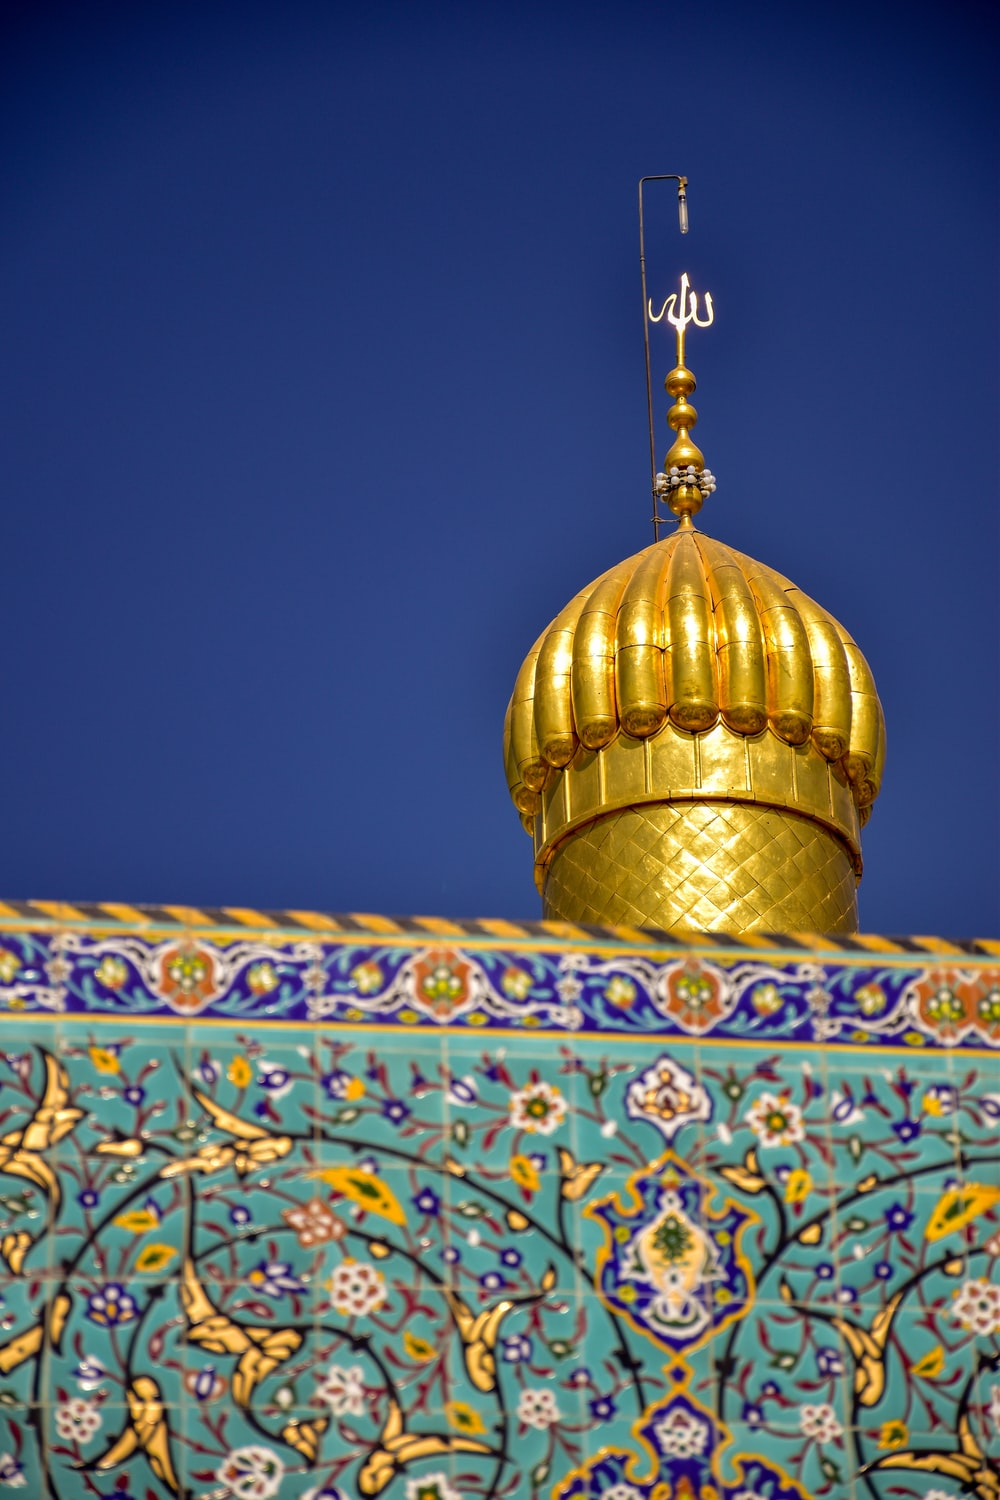 blue and gold dome top building